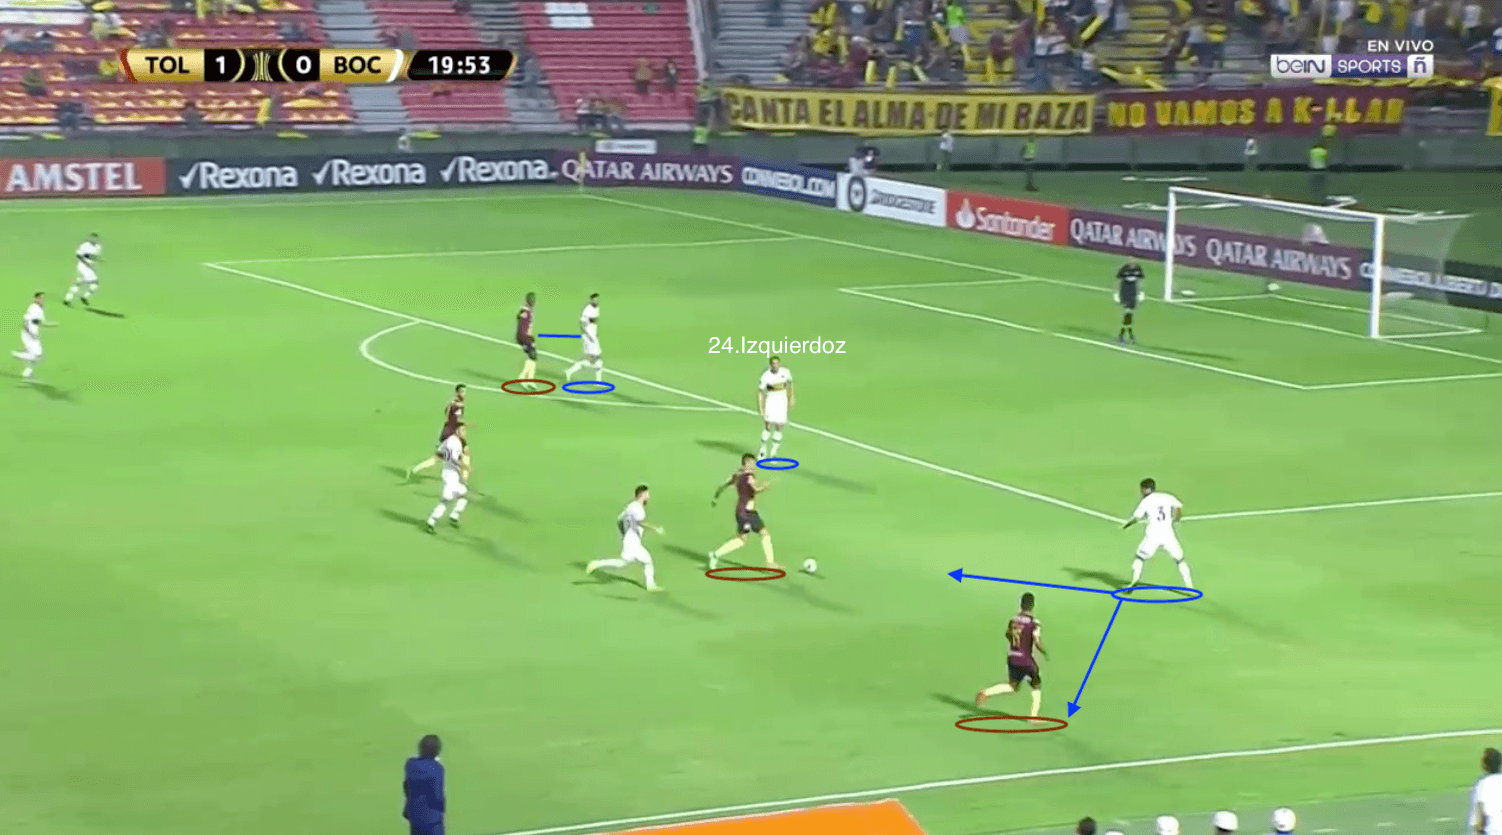 Copa Libertadores 2018/19 Tactical Analysis: Deportes Tolima v Boca Juniors